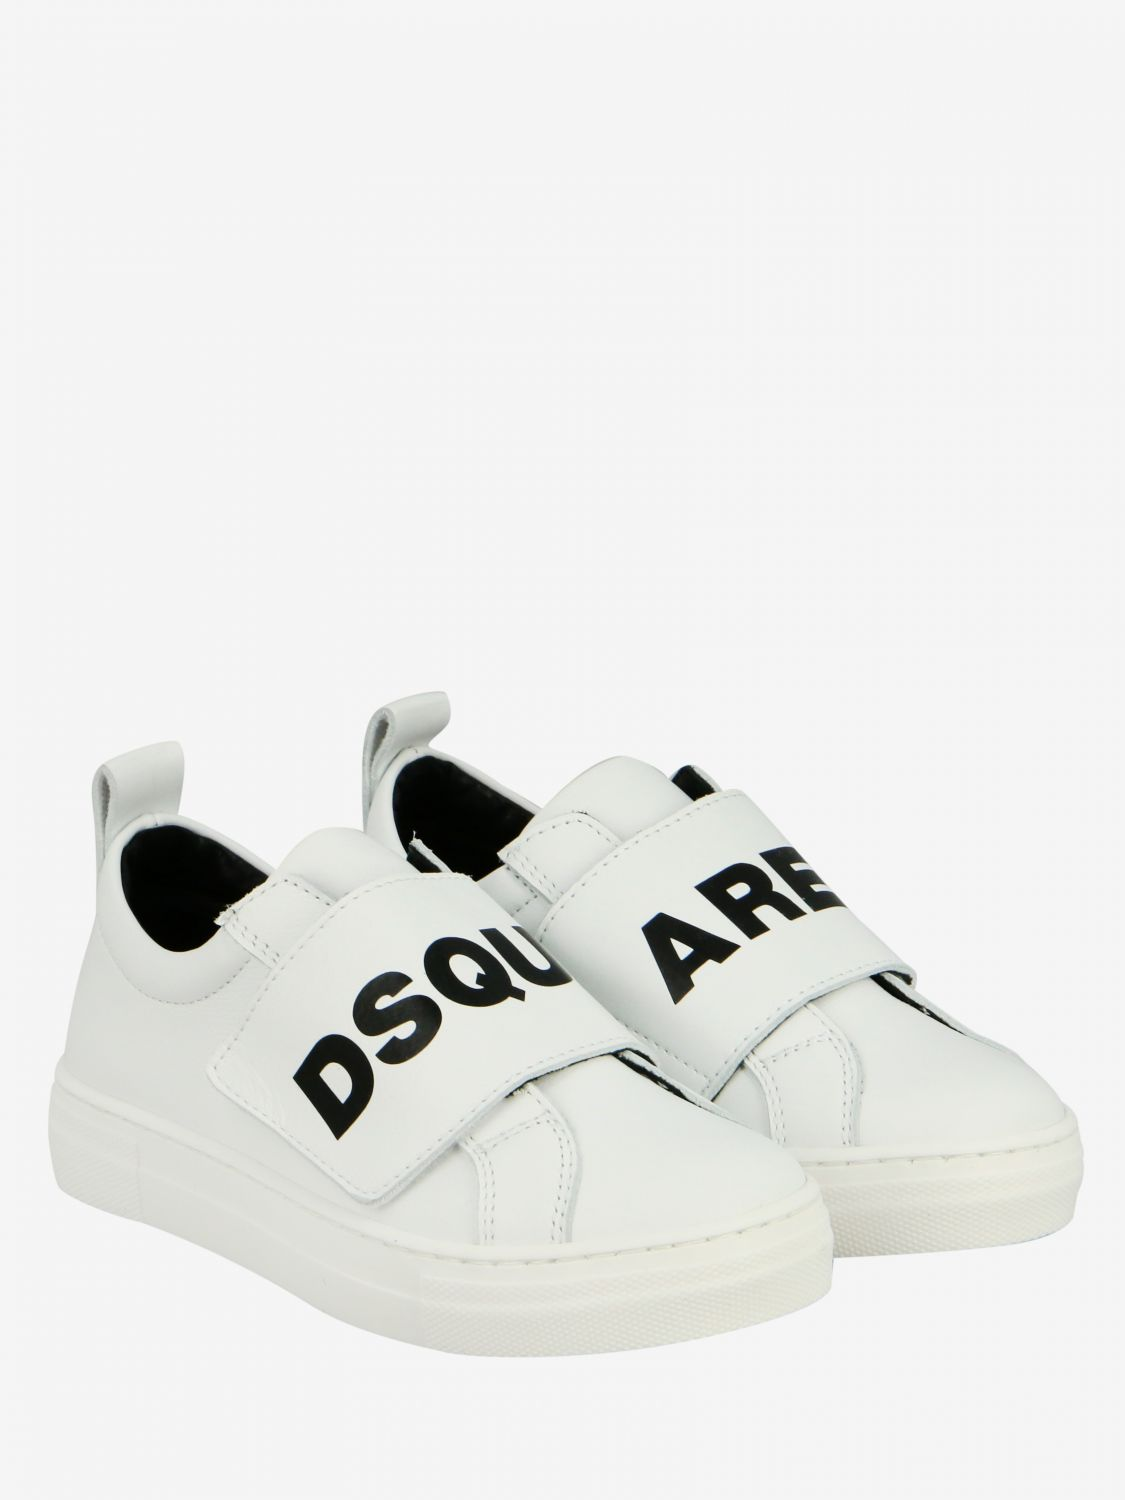 Shoes kids Dsquared2 Junior white 2